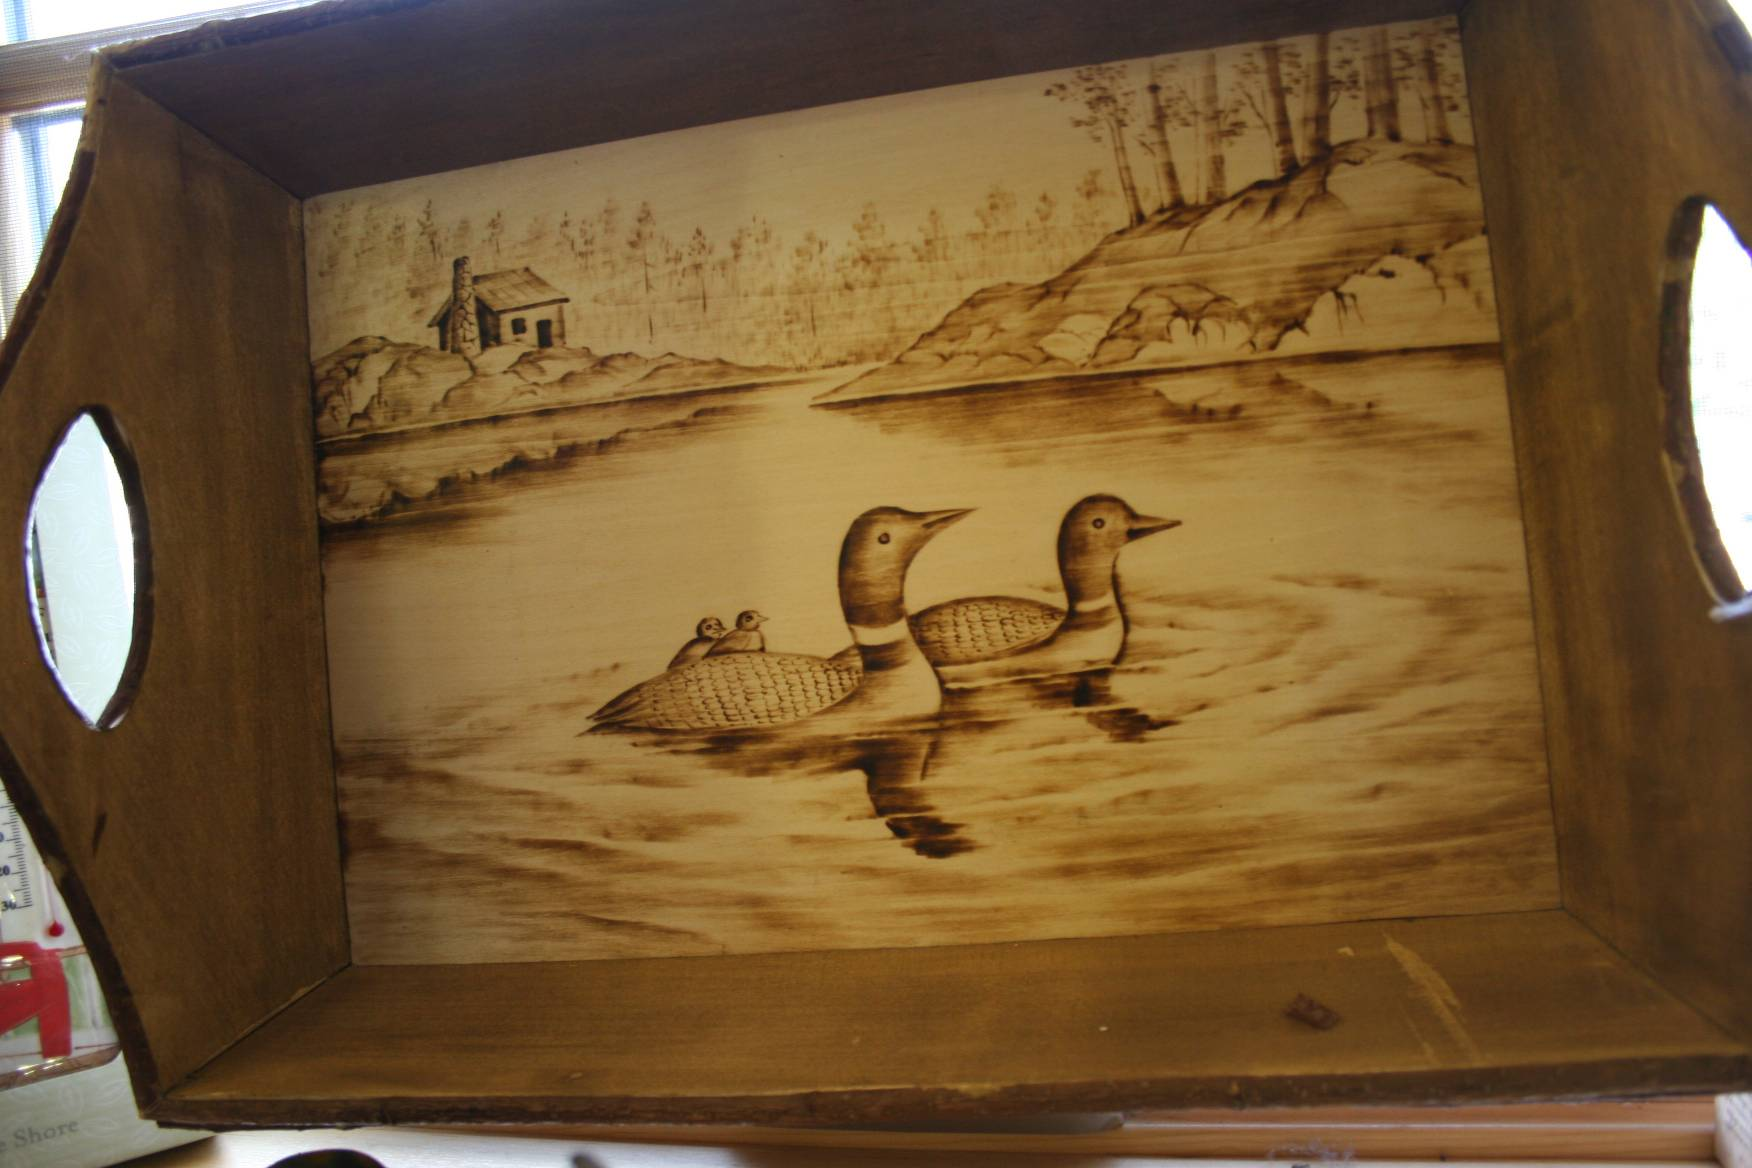 Loons in art at Itasca.